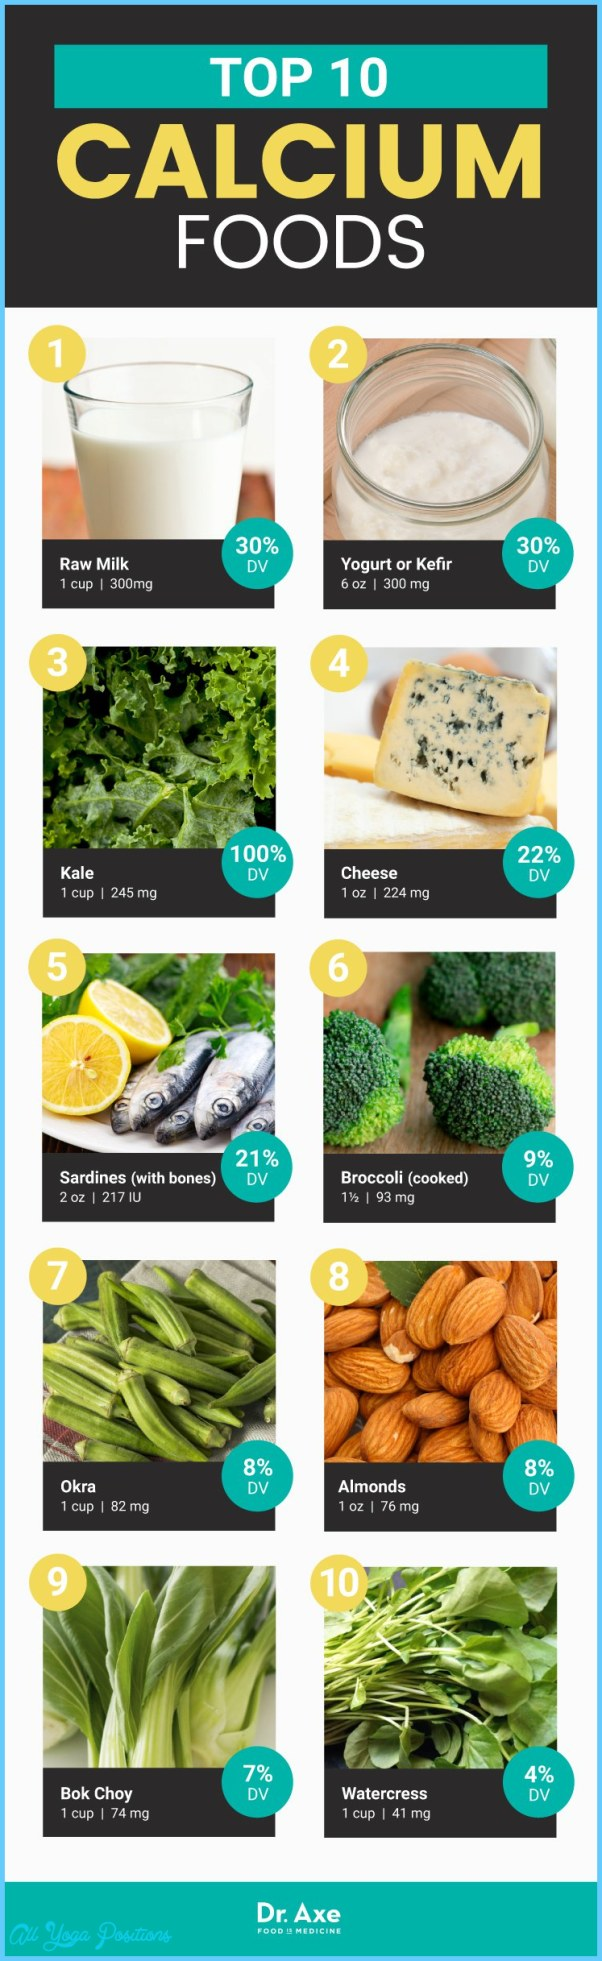 Calcium-foods-and-sources.jpg